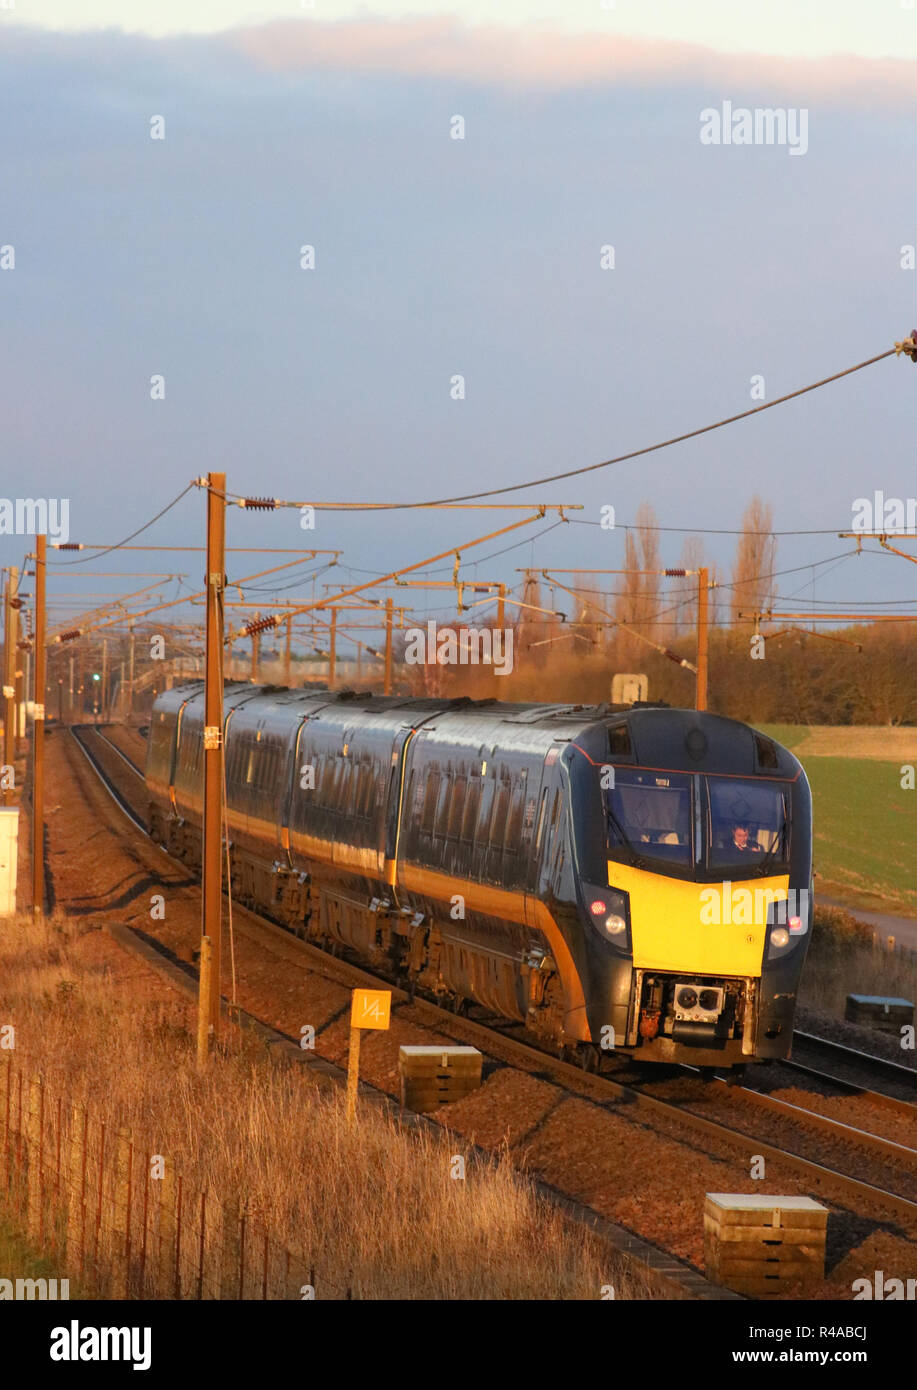 Class 180 diesel-hydraulic multiple unit train in Grand Central livery on East Coast Main Line near Colton junction, south of York, 24th November 2018. - Stock Image